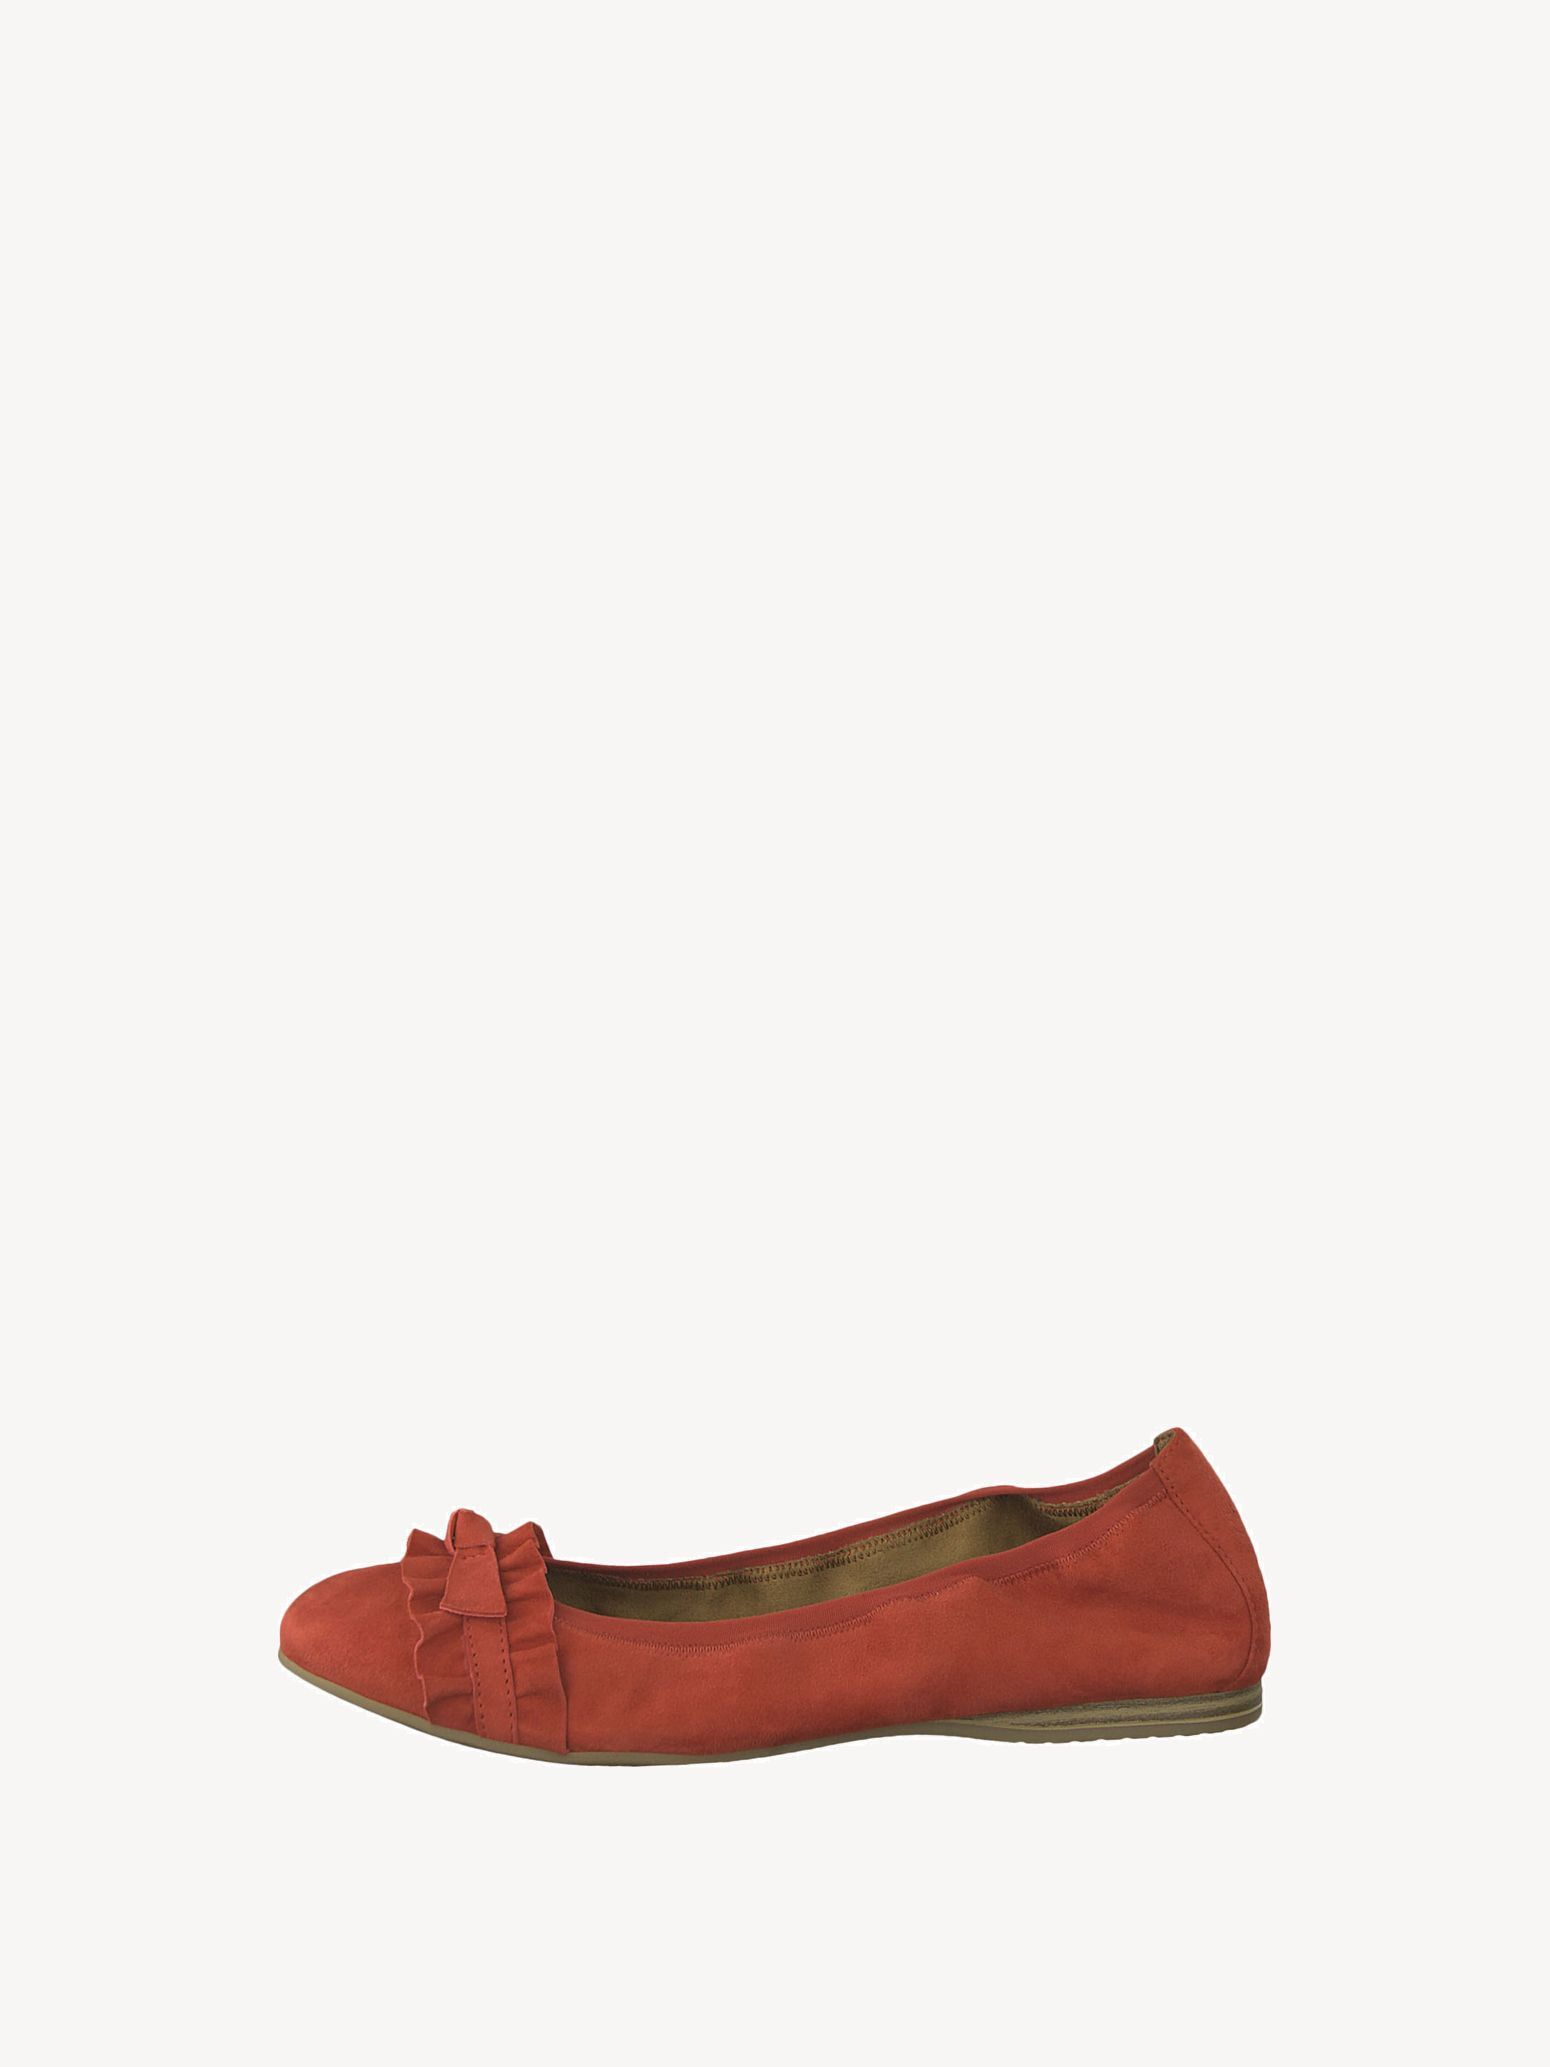 Buy Tamaris Ballerinas online now!